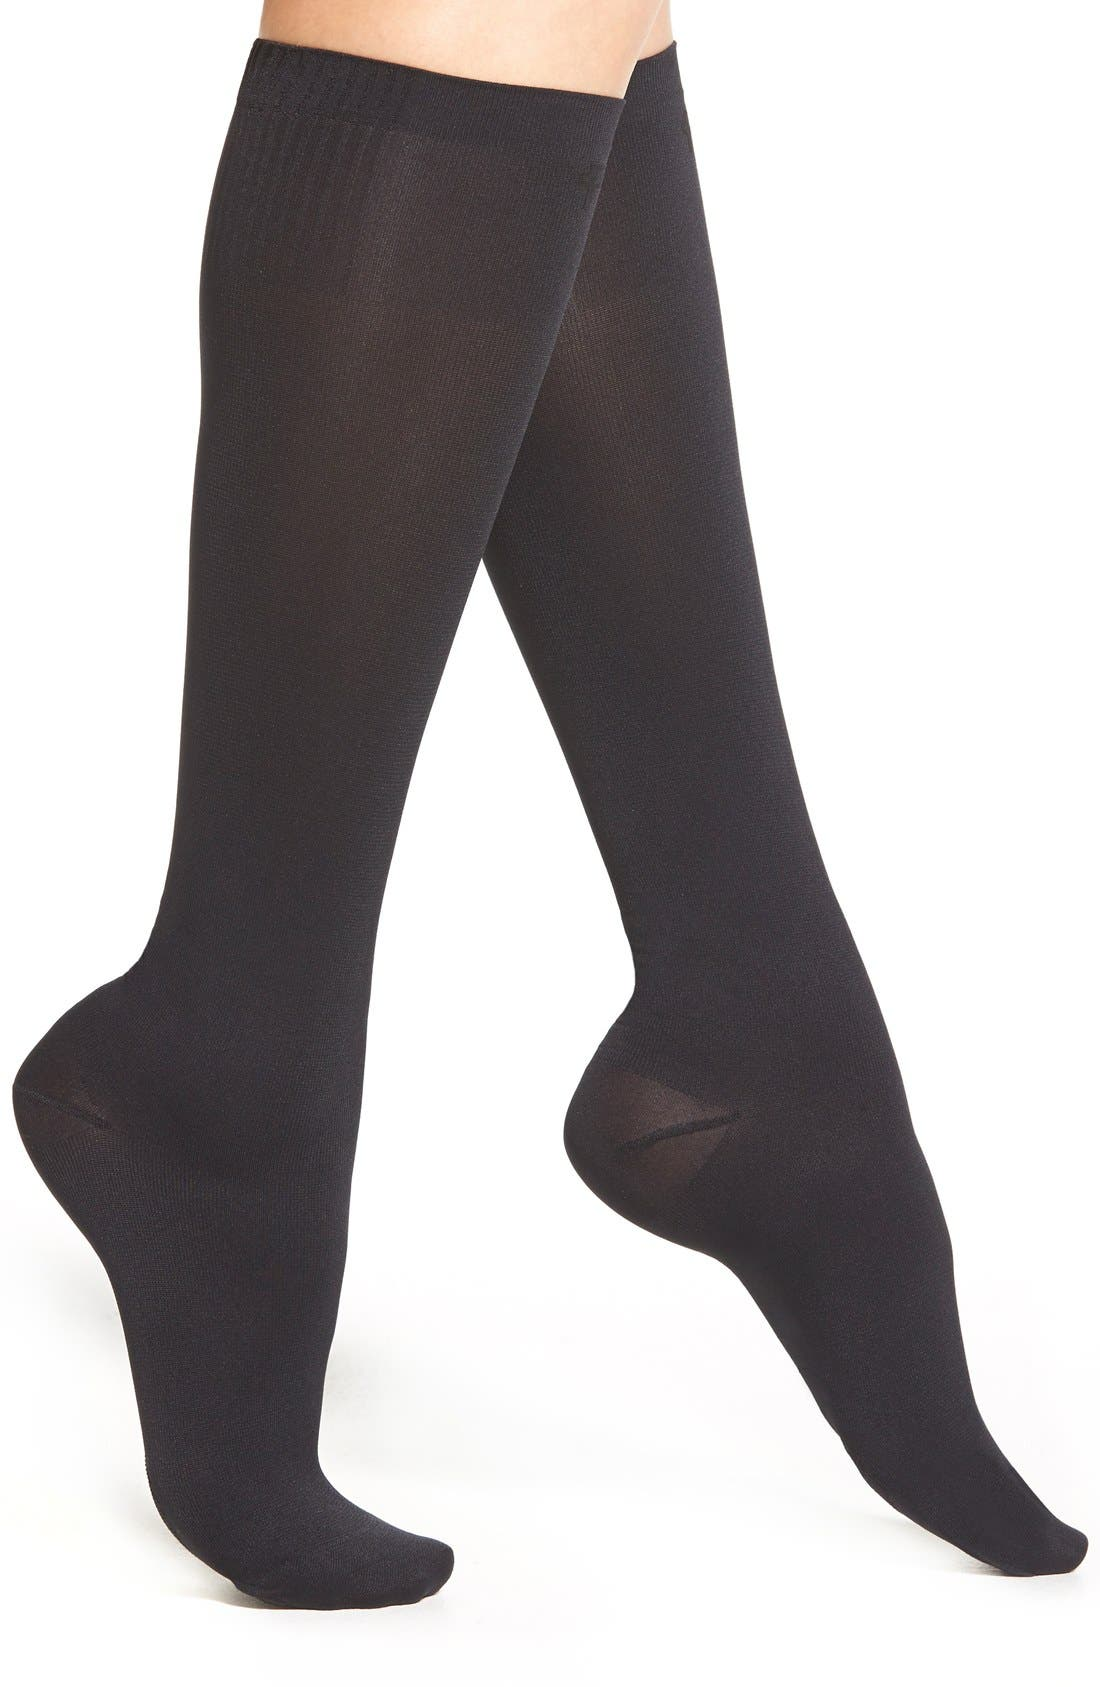 Alternate Image 1 Selected - Pretty Polly 'On the Go' CompressionTrouserSocks